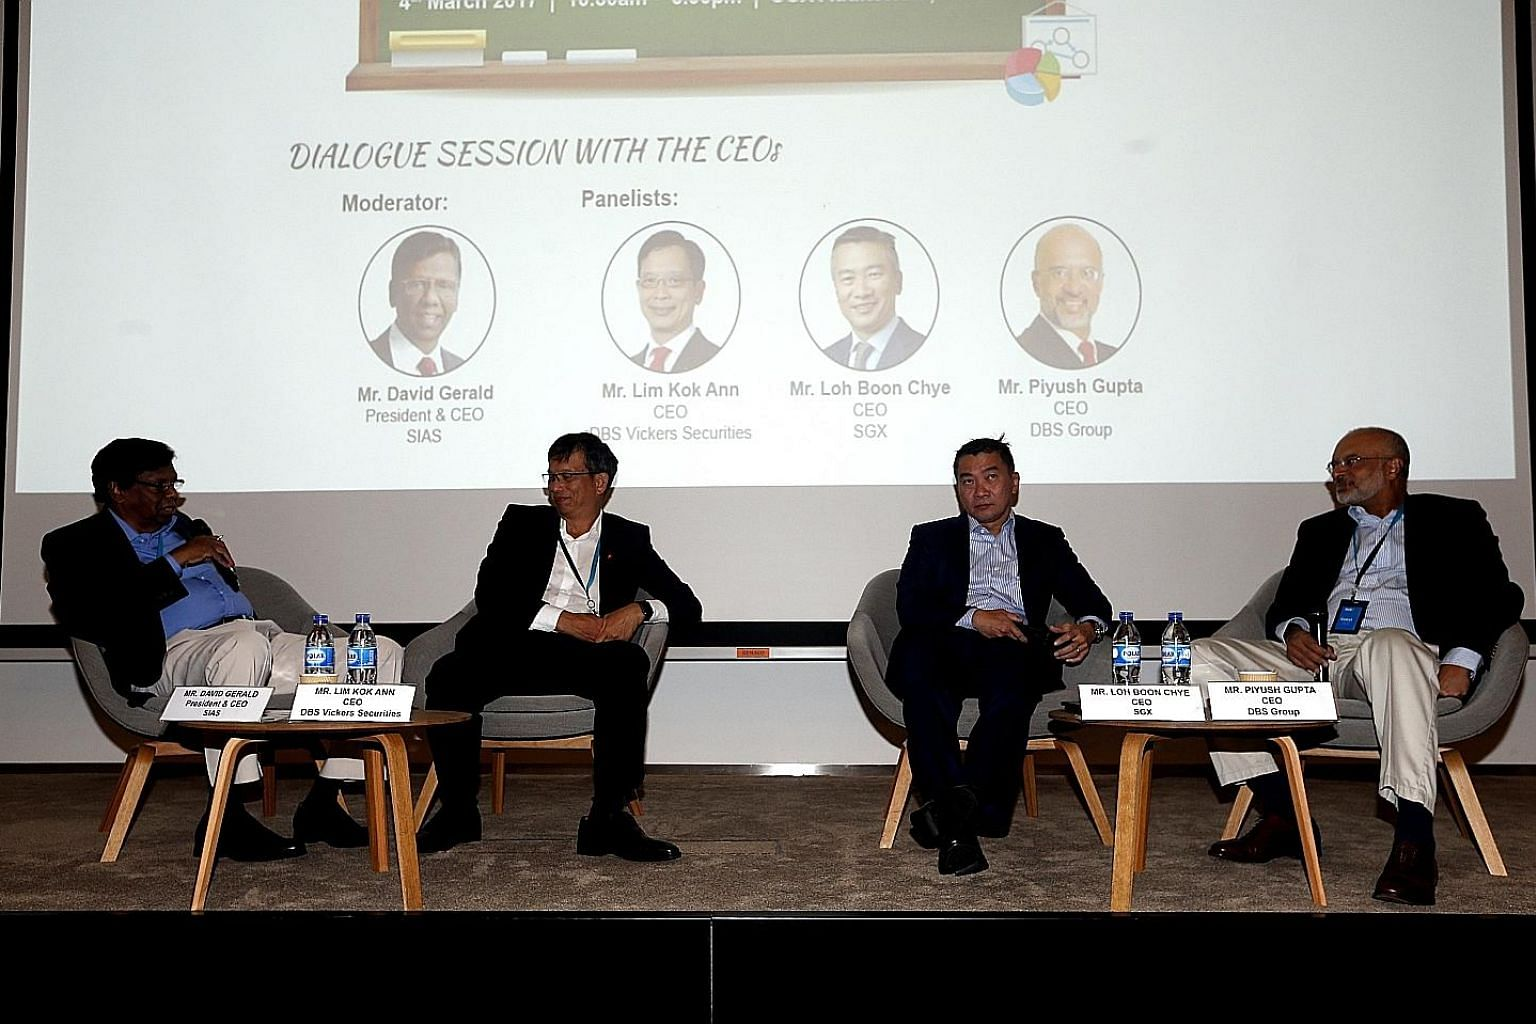 A seminar for young people to learn the ropes of investing from a panel of financial bigwigs drew a 250-strong crowd. From left are Sias founder president and panel moderator David Gerald, DBS Vickers Securities chief executive Lim Kok Ann, SGX chief